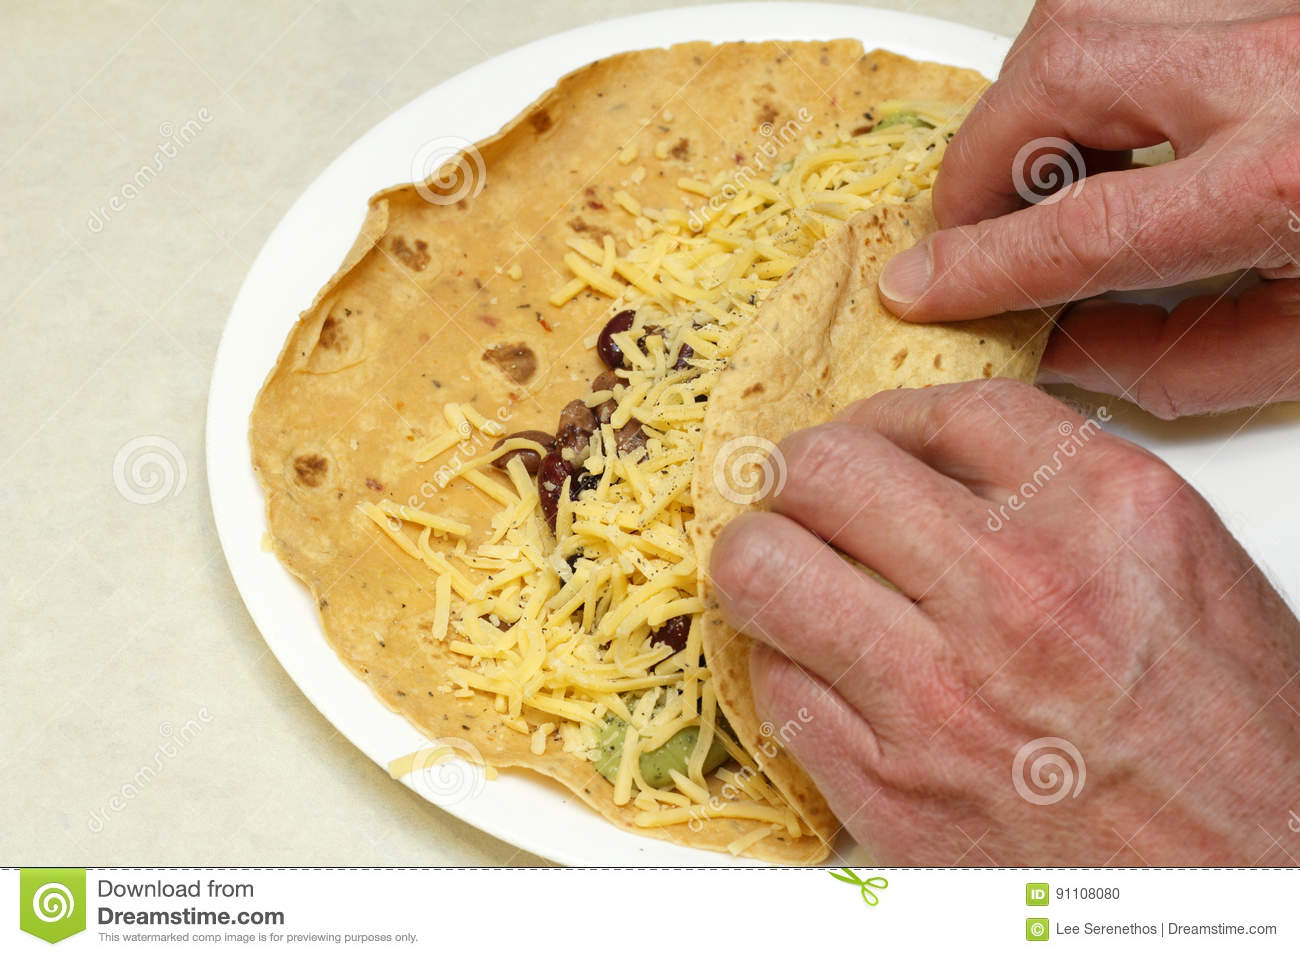 Two Hands Rolling a Vegetarian Burrito